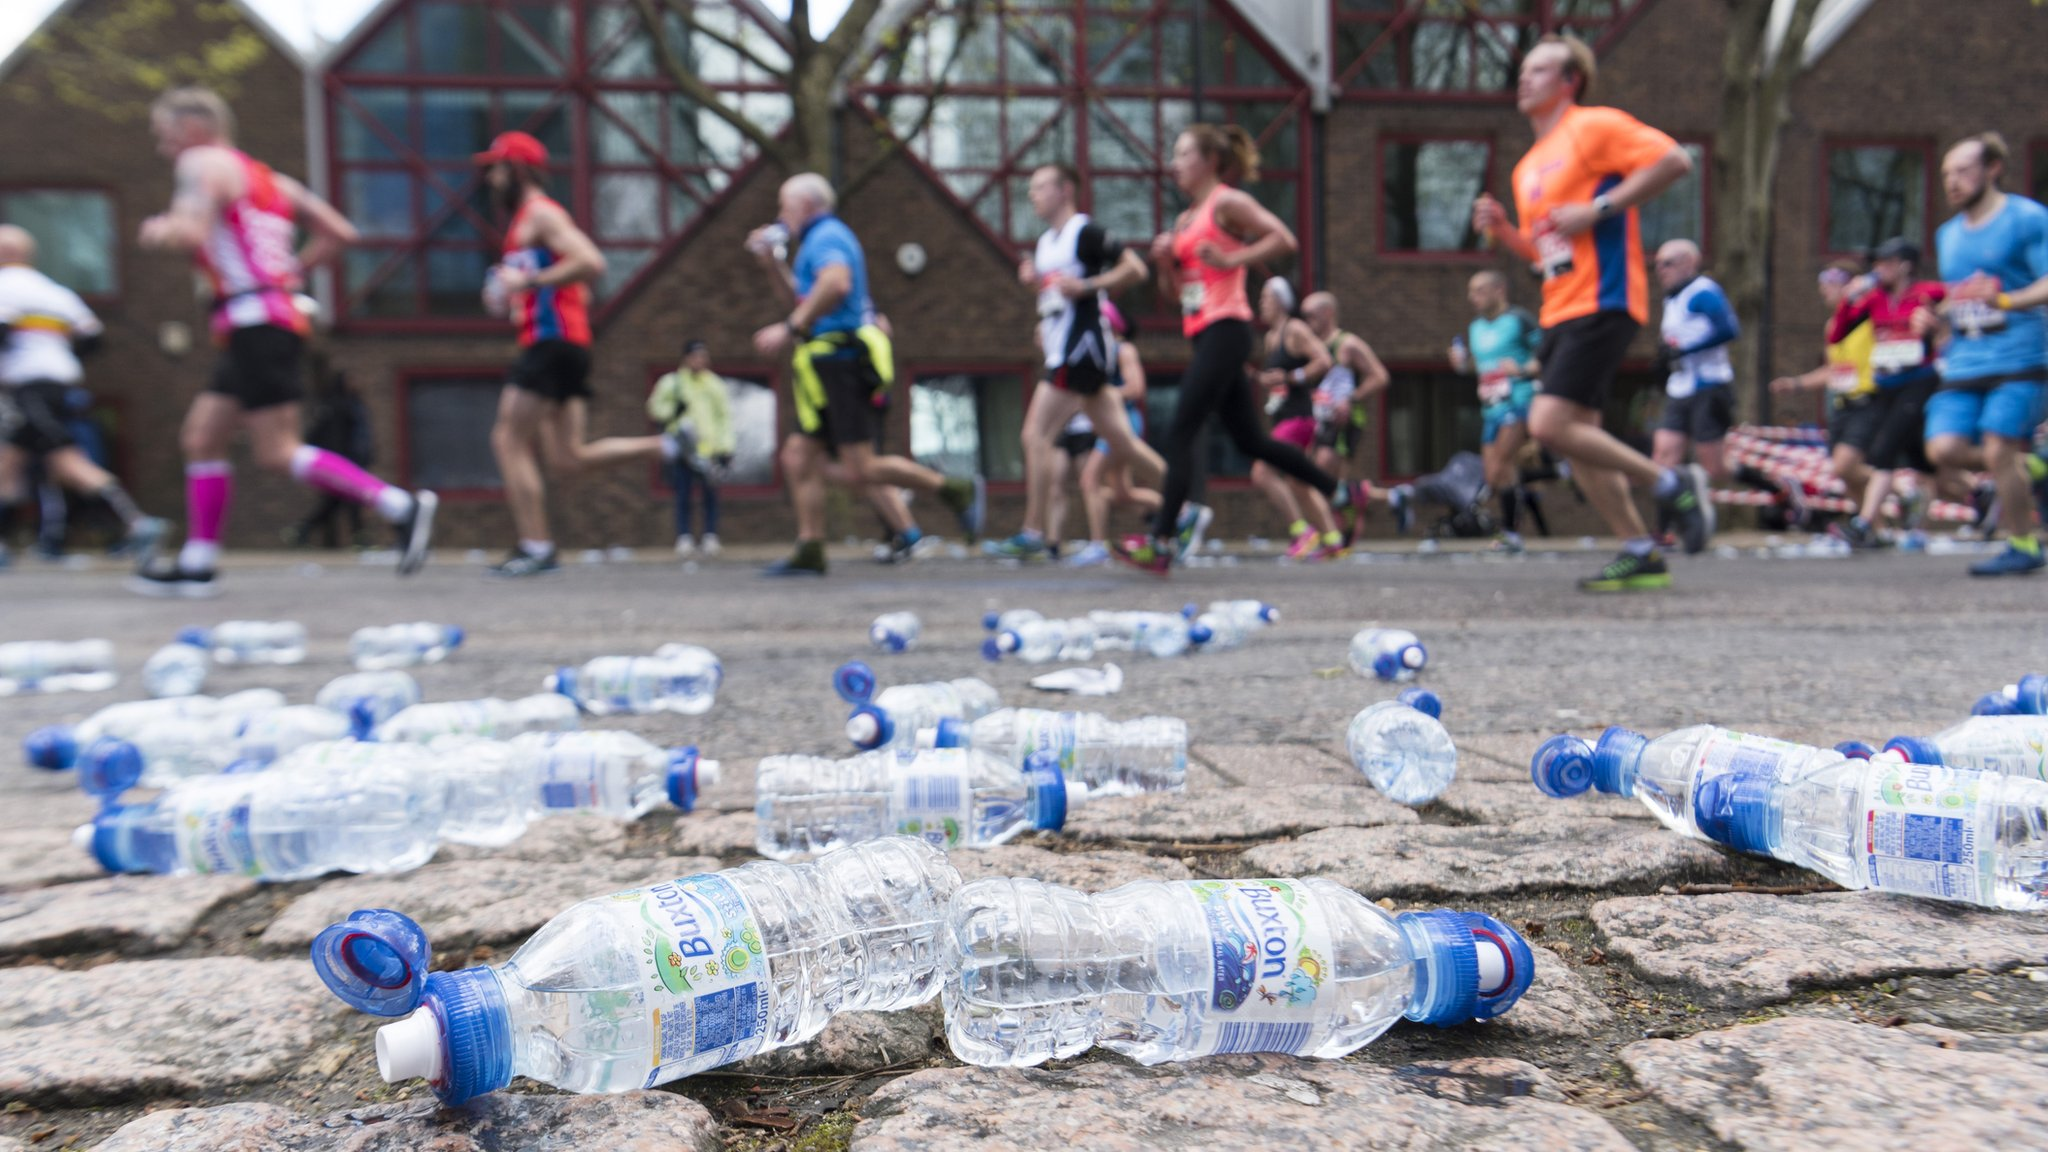 London Marathon: How do you reduce the environmental impact?